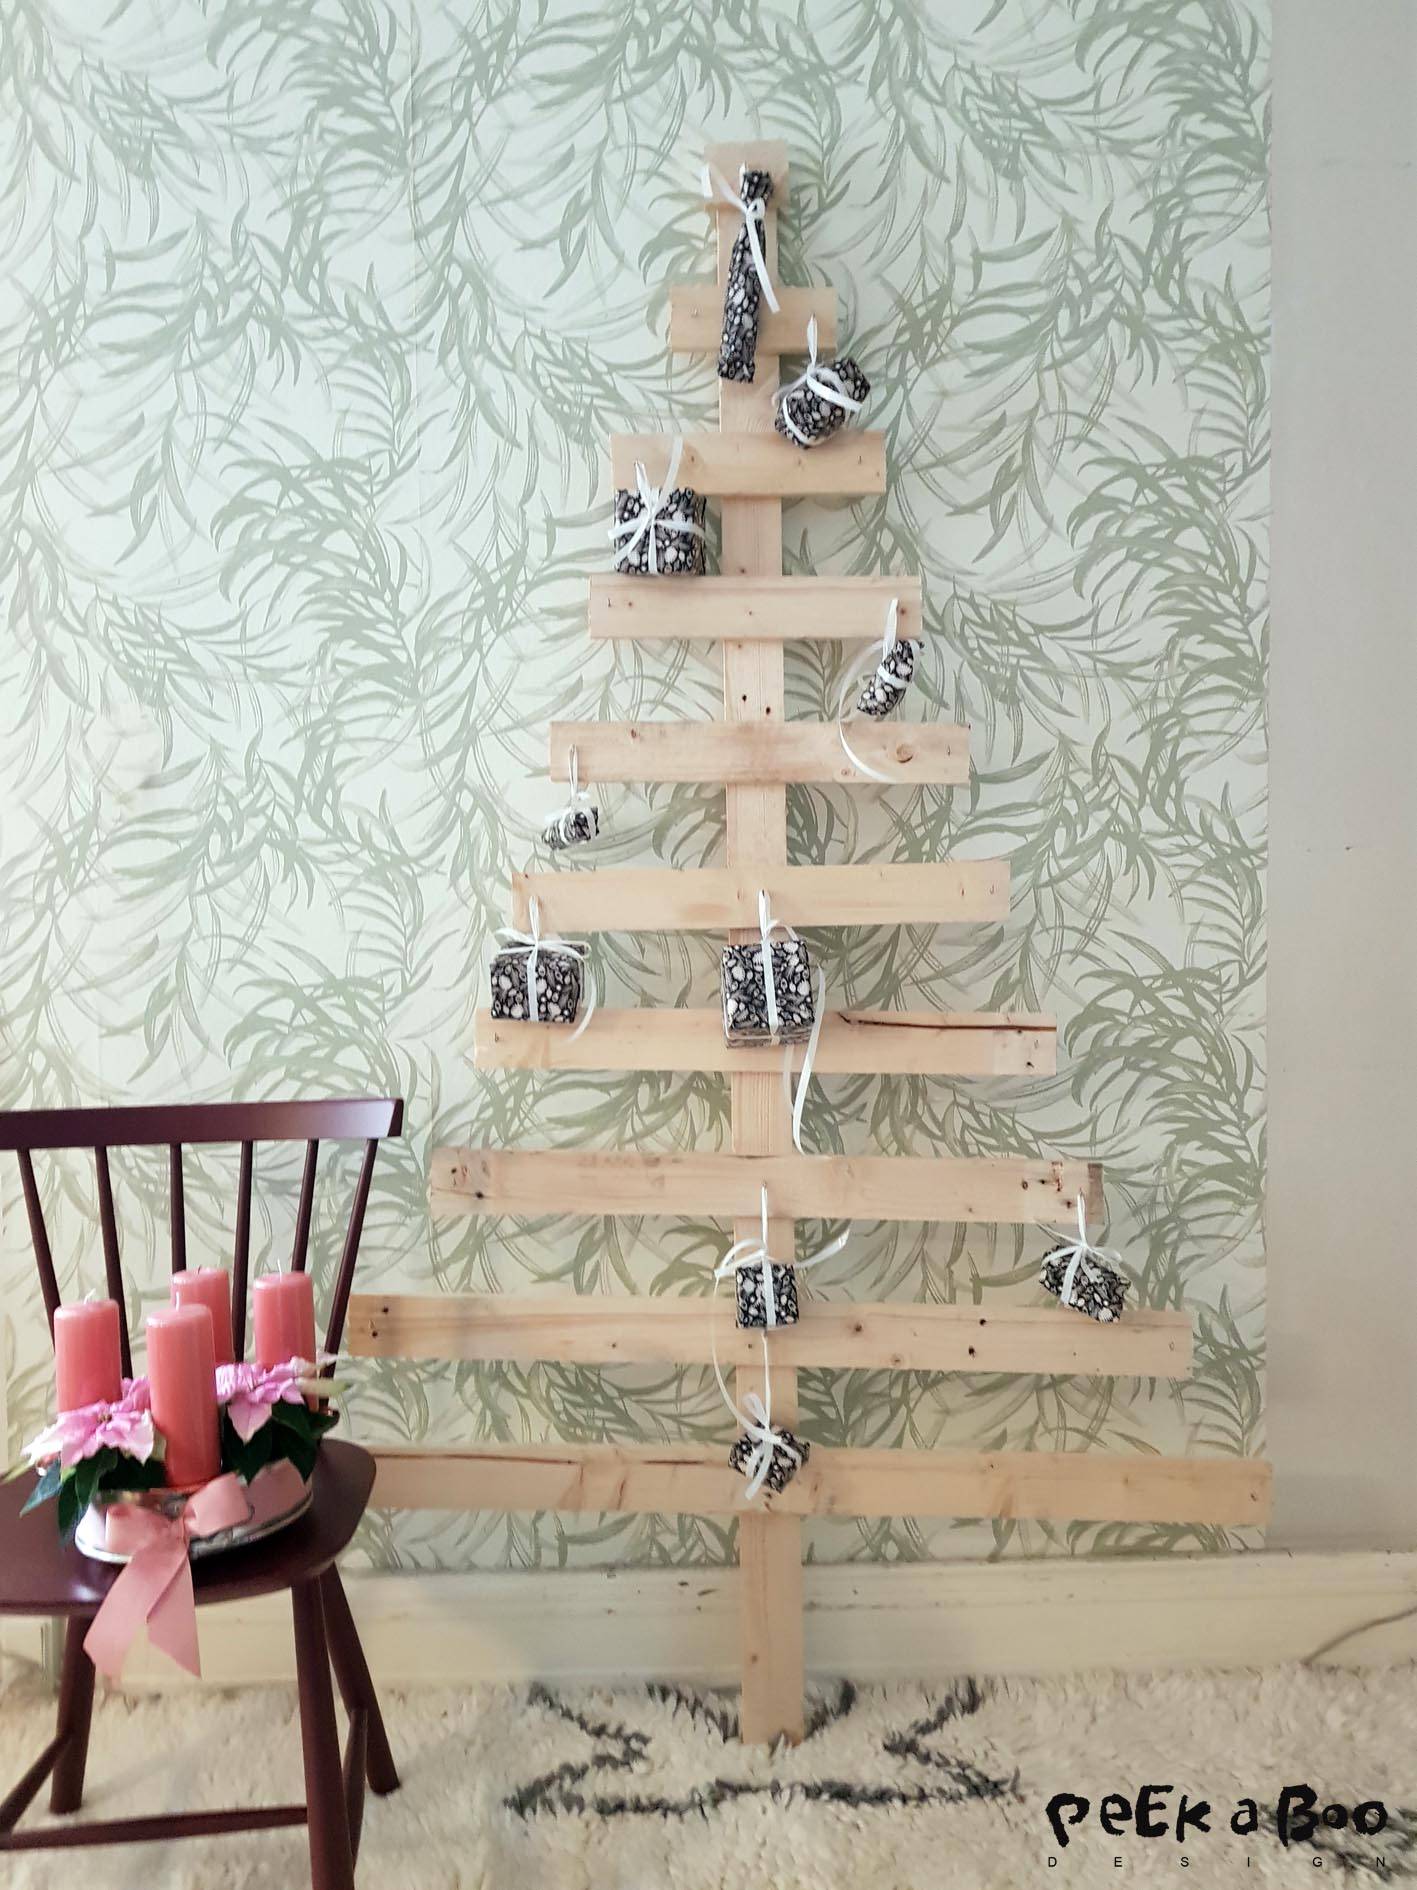 The adventcalender christmas tree made out of old pallets and giving christmas a nordic touch.